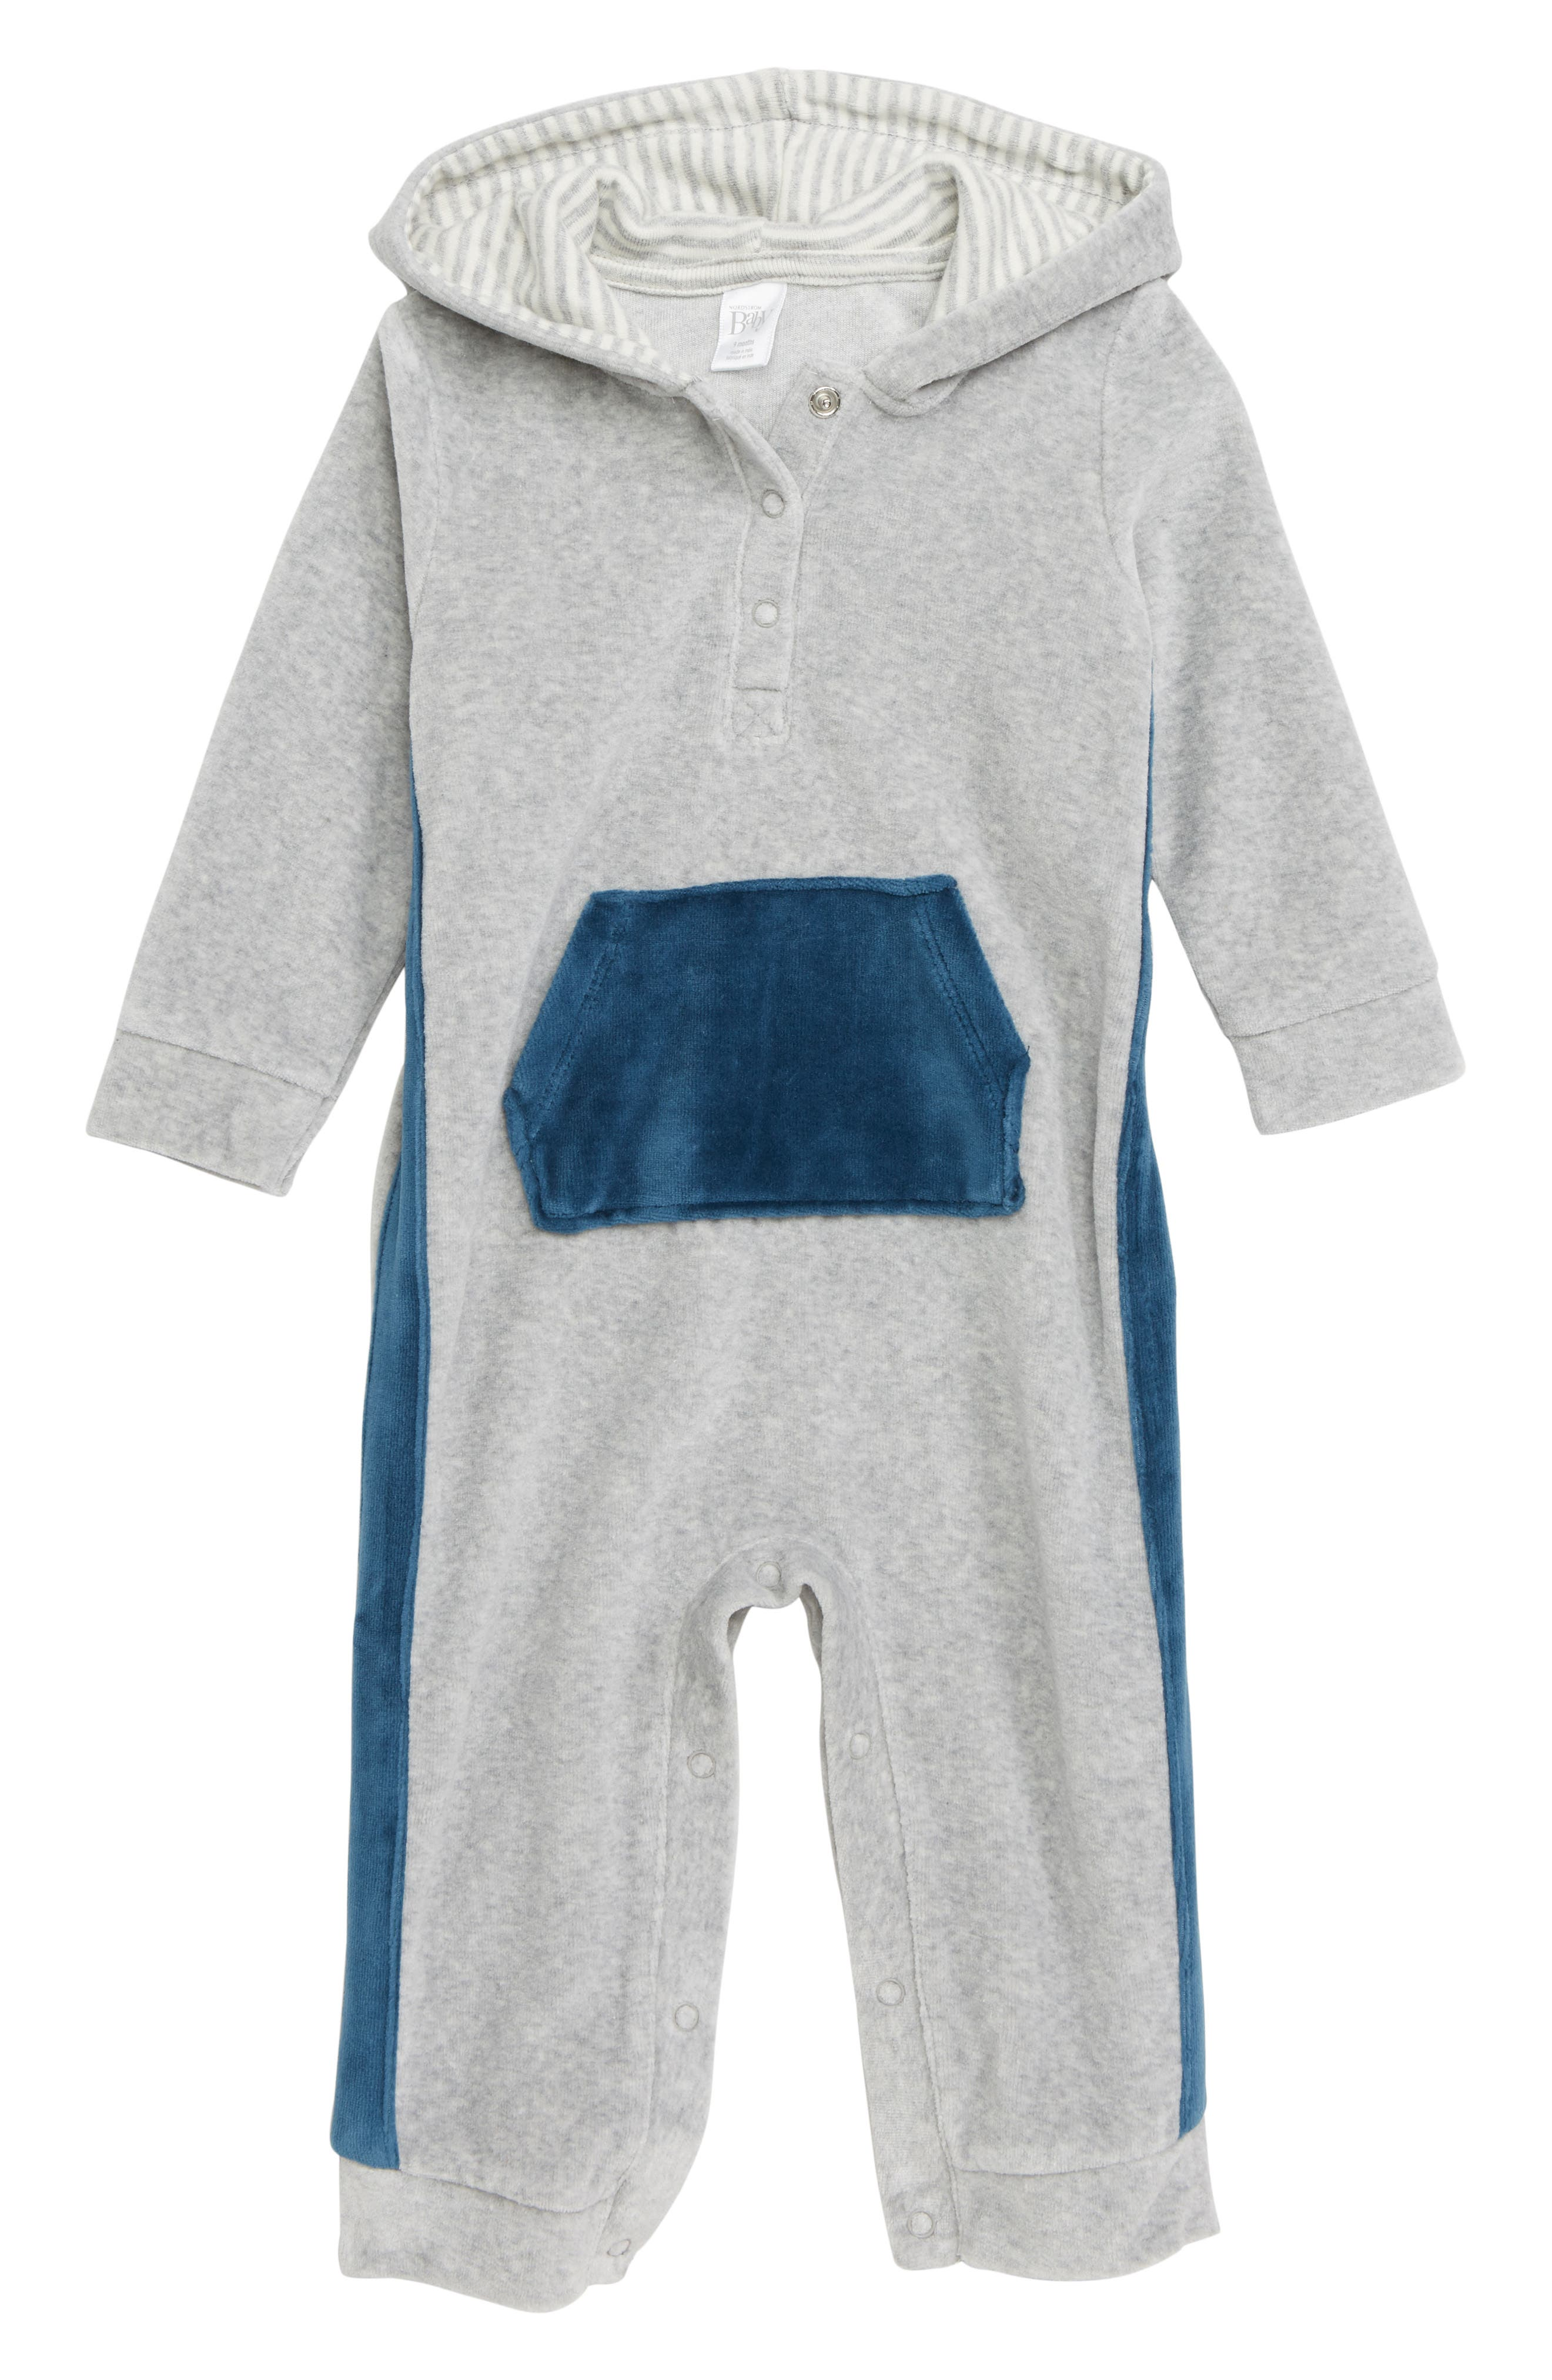 Hooded Velour Romper,                             Main thumbnail 1, color,                             GREY ASH HEATHER